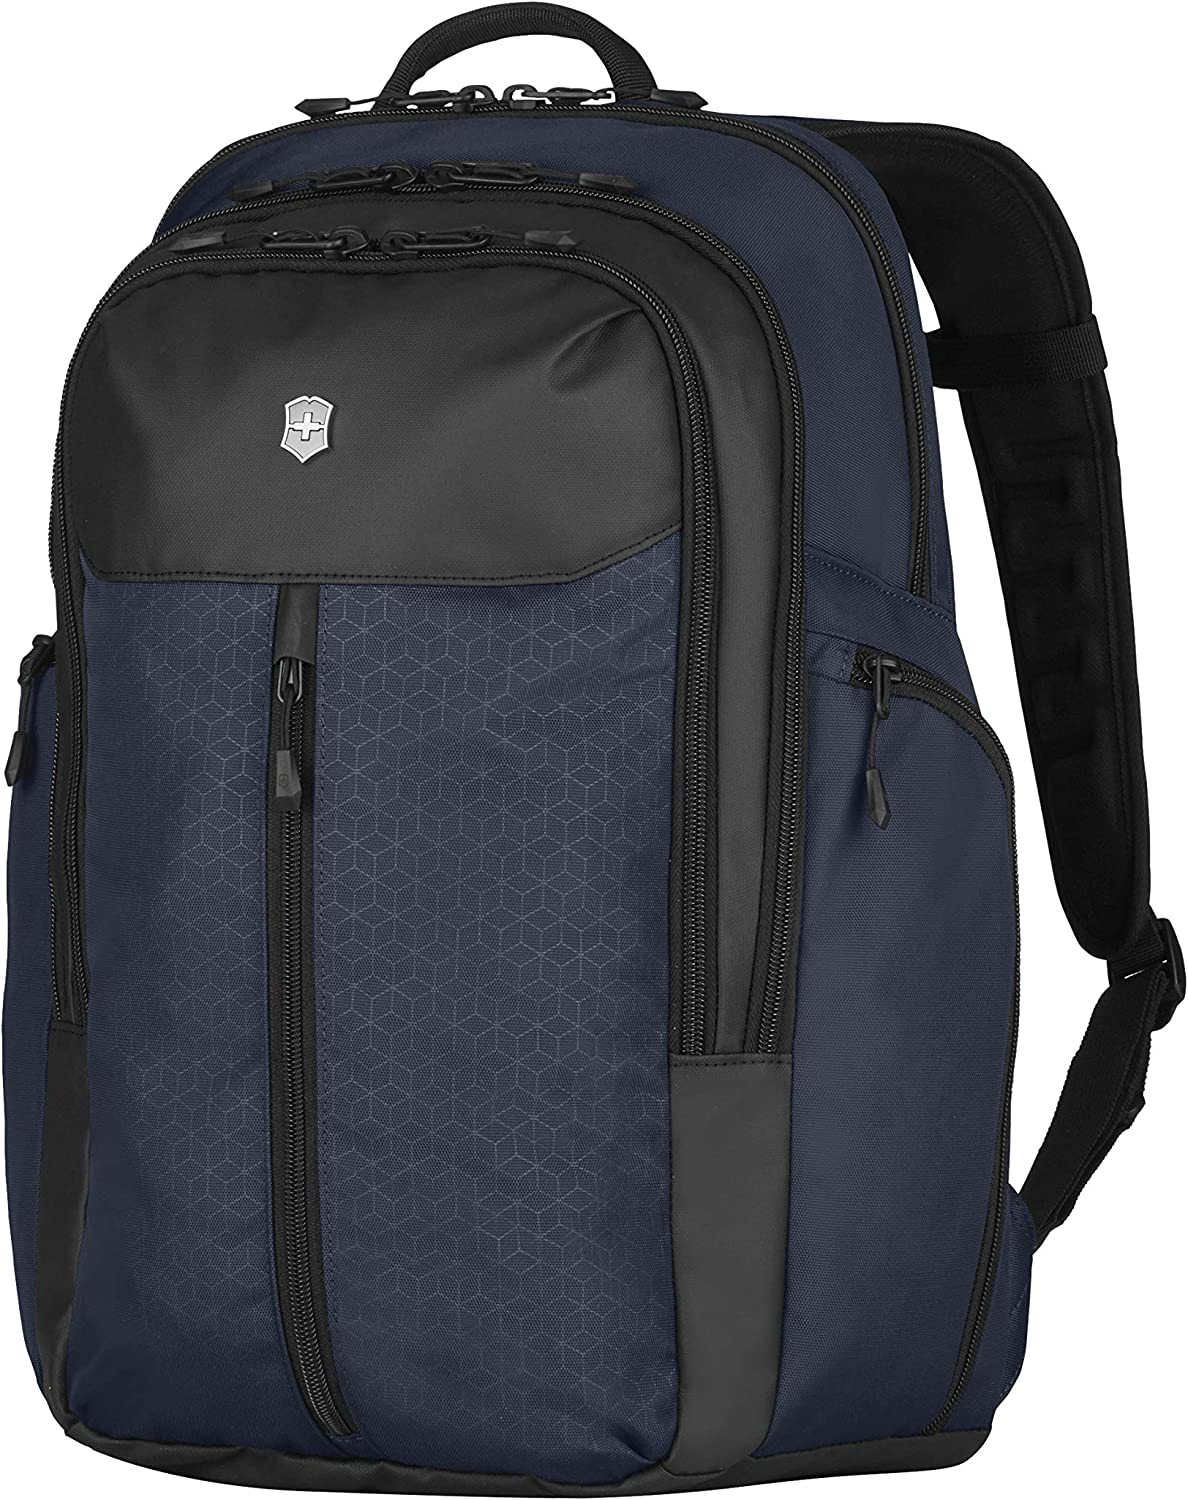 Victorinox Altmont Original Vertical-Zip Laptop Backpack (Blue)